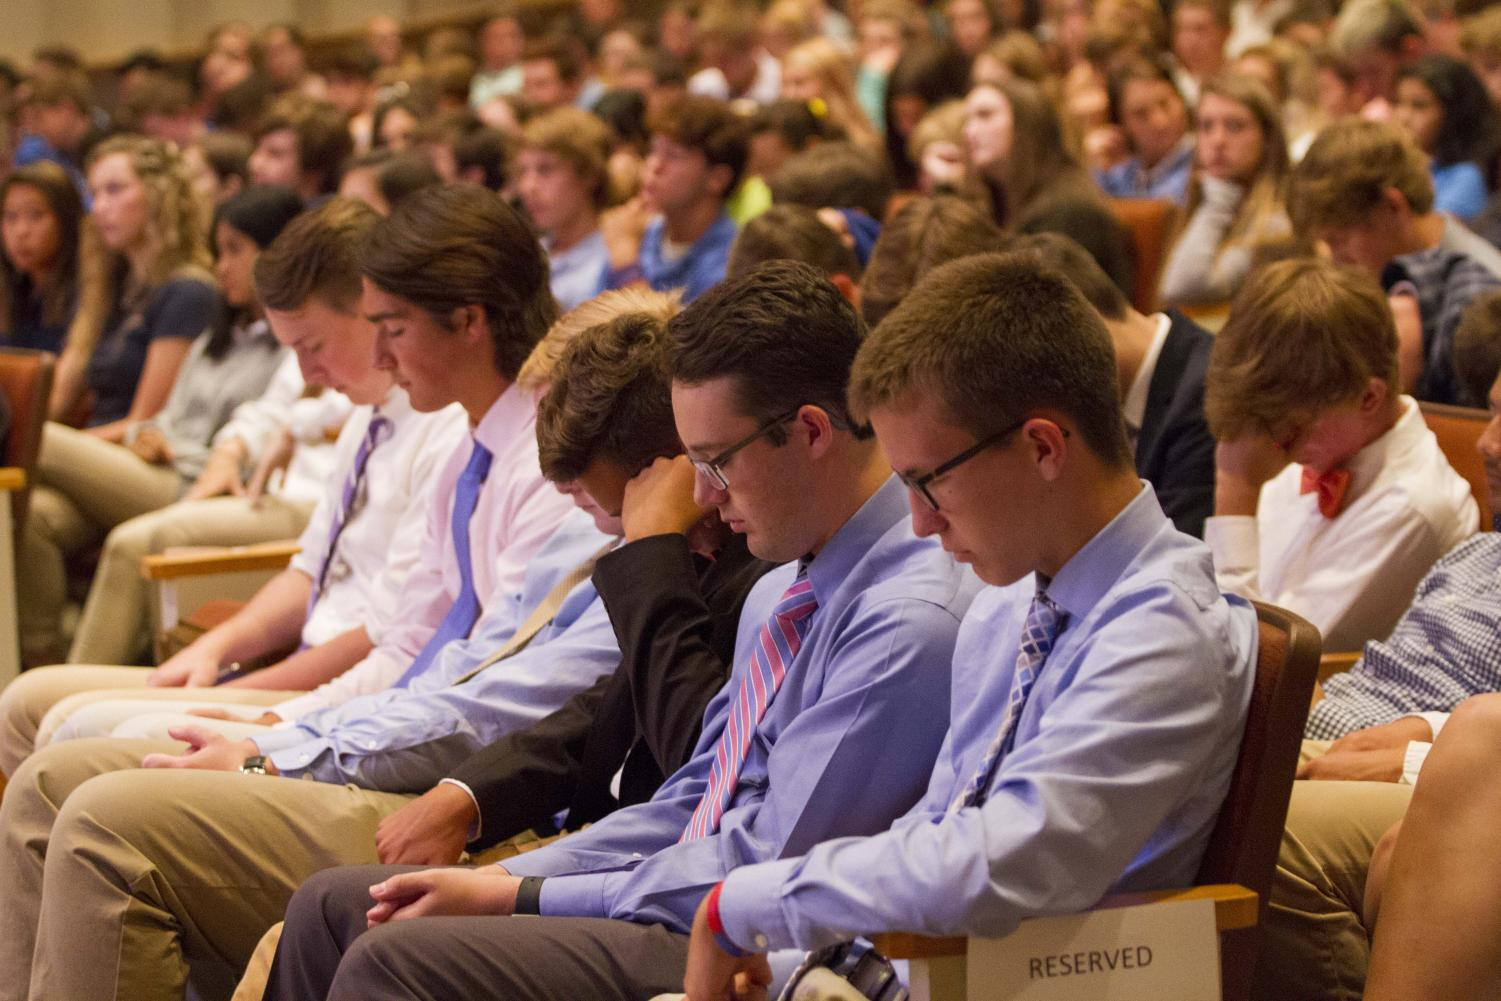 Students pray during the Convocation ceremony.